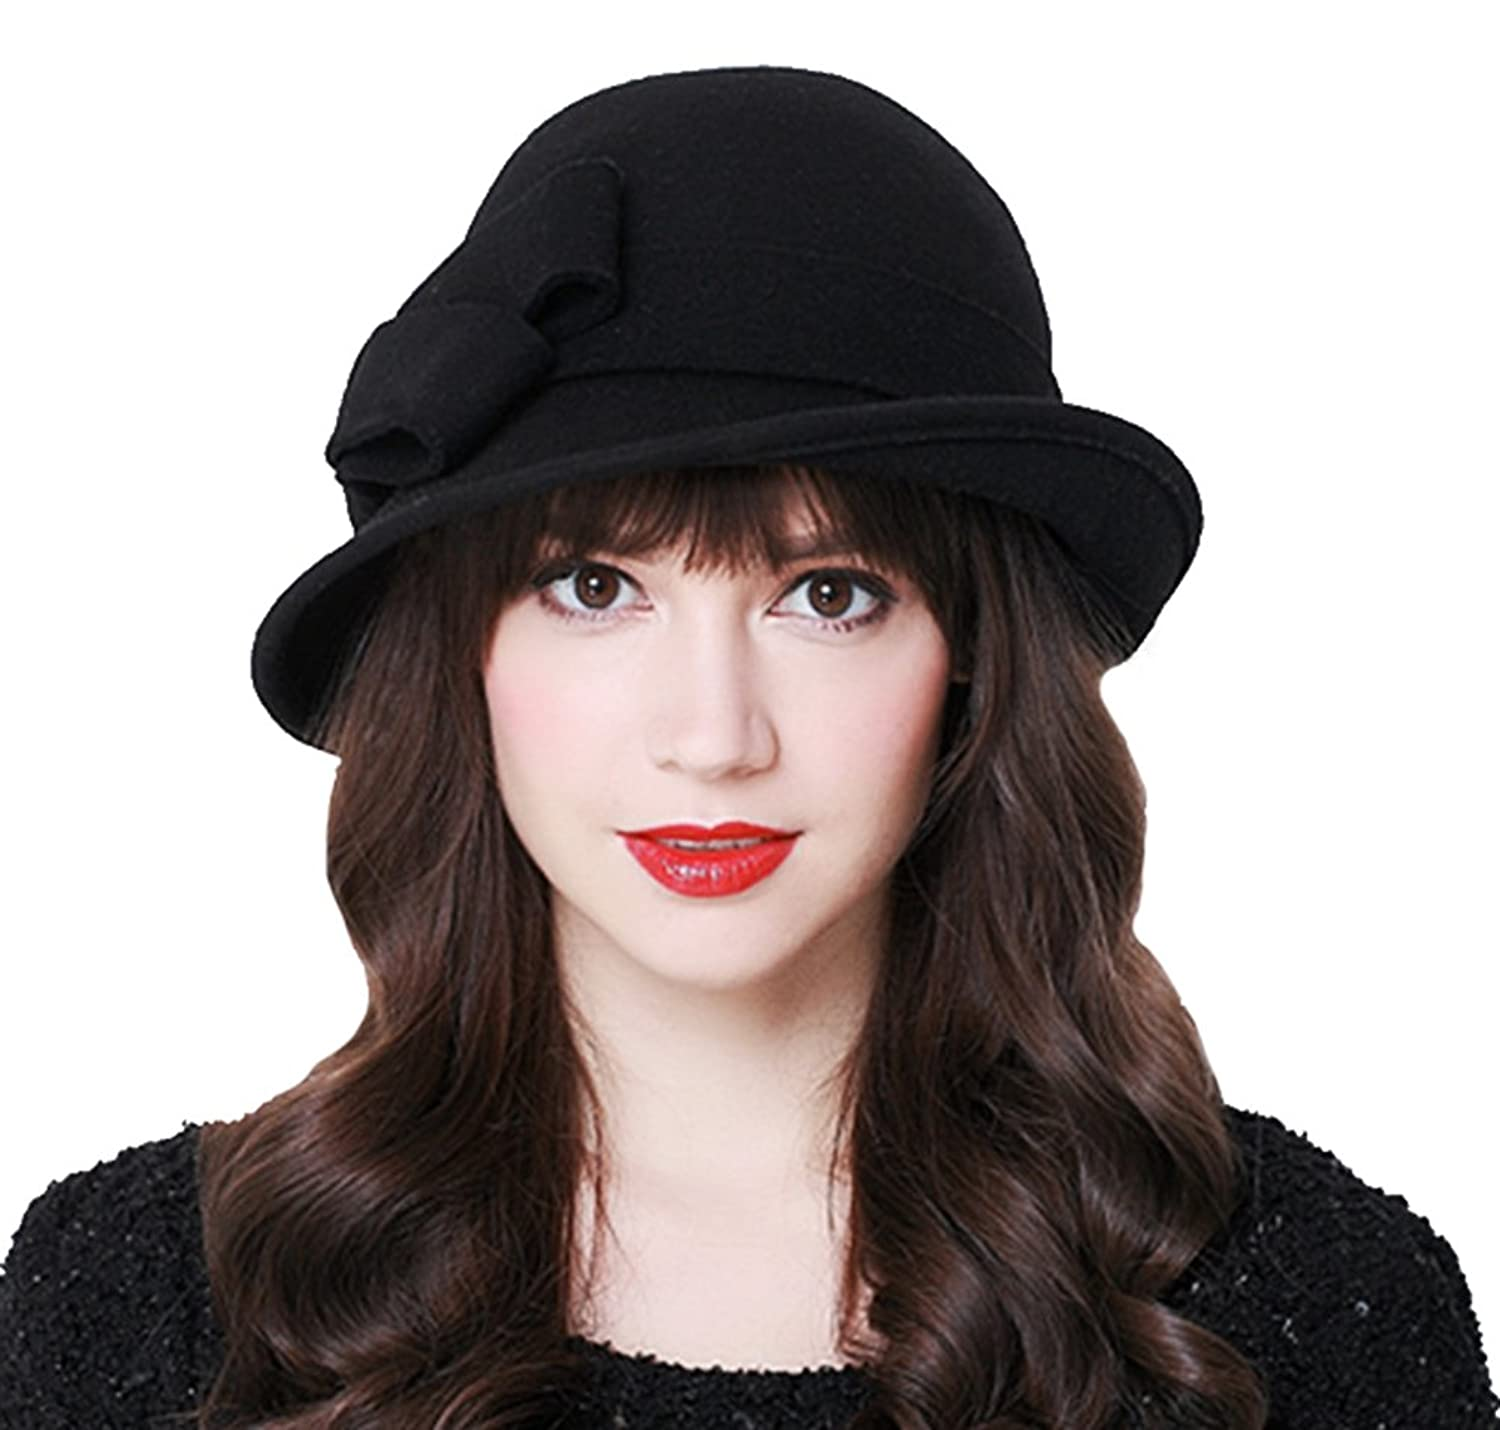 62deaaa17dd52 1940s Hats History Bellady Women Solid Color Winter Hat 100% Wool Cloche  Bucket with Bow